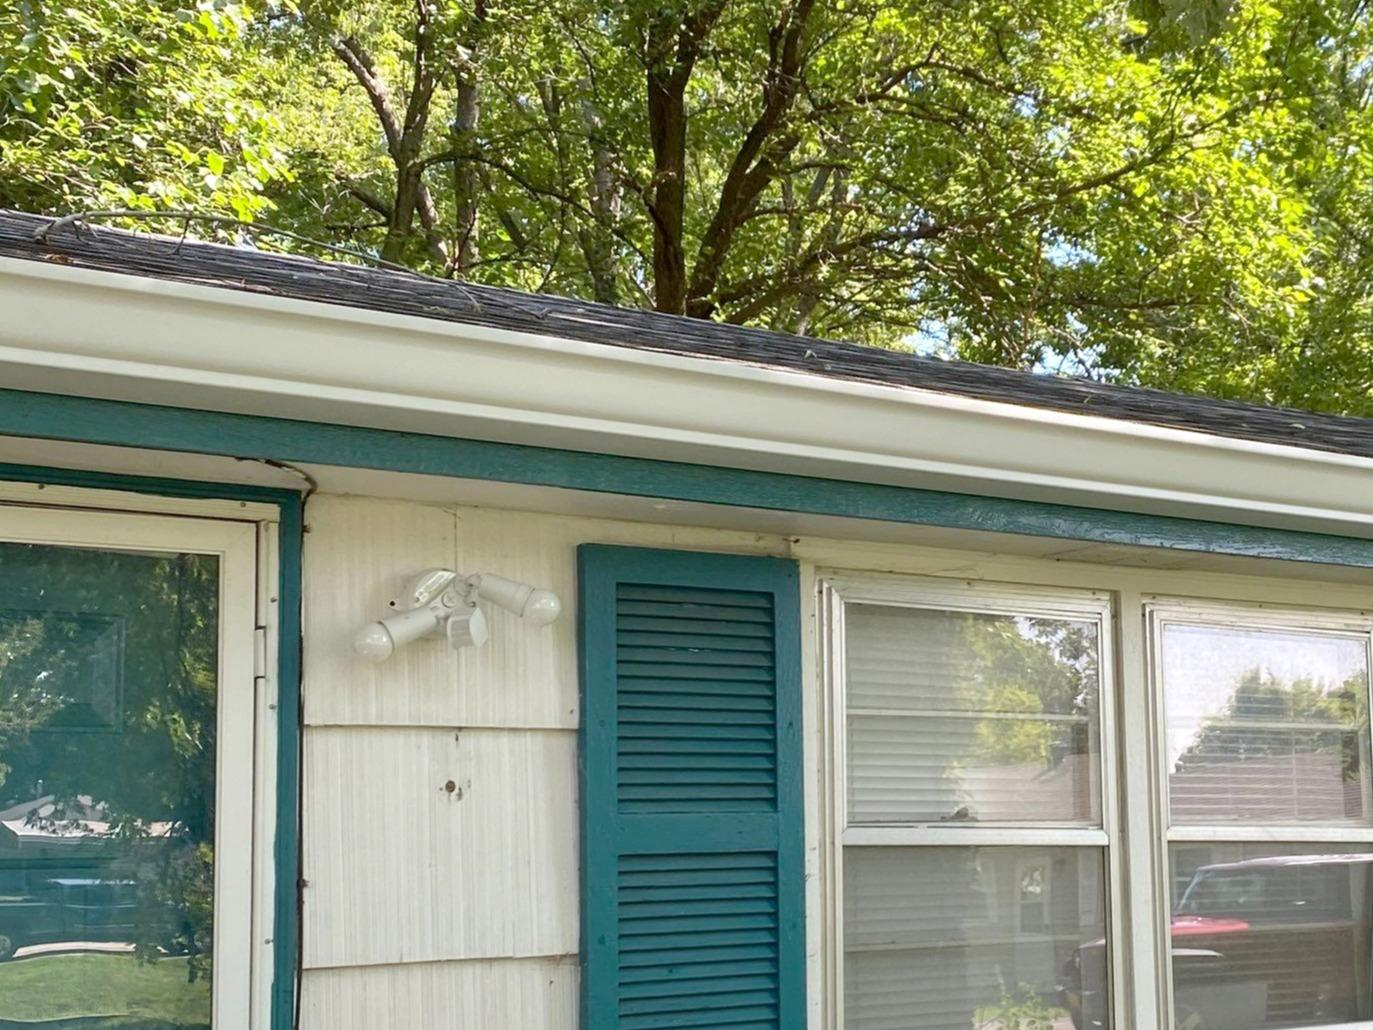 6 Inch Gutters & Bulldog Gutter Guards Installed on a Home in Kansas City, MO. - After Photo